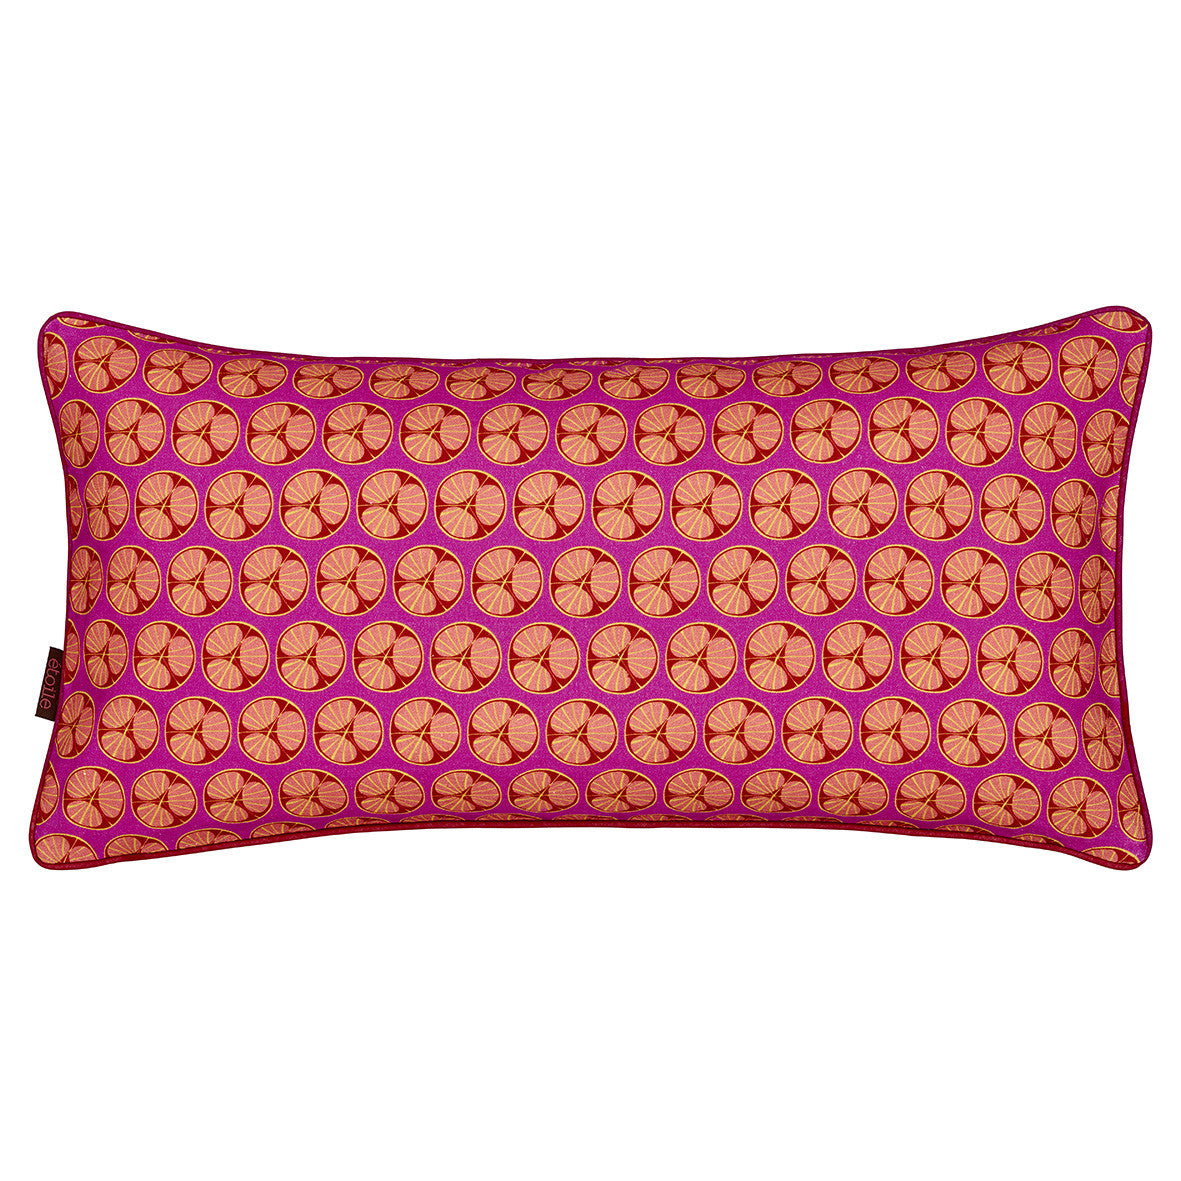 Graphic Fruit Cross Section Pattern Linen Union Printed Cushion in Fuchsia Pink